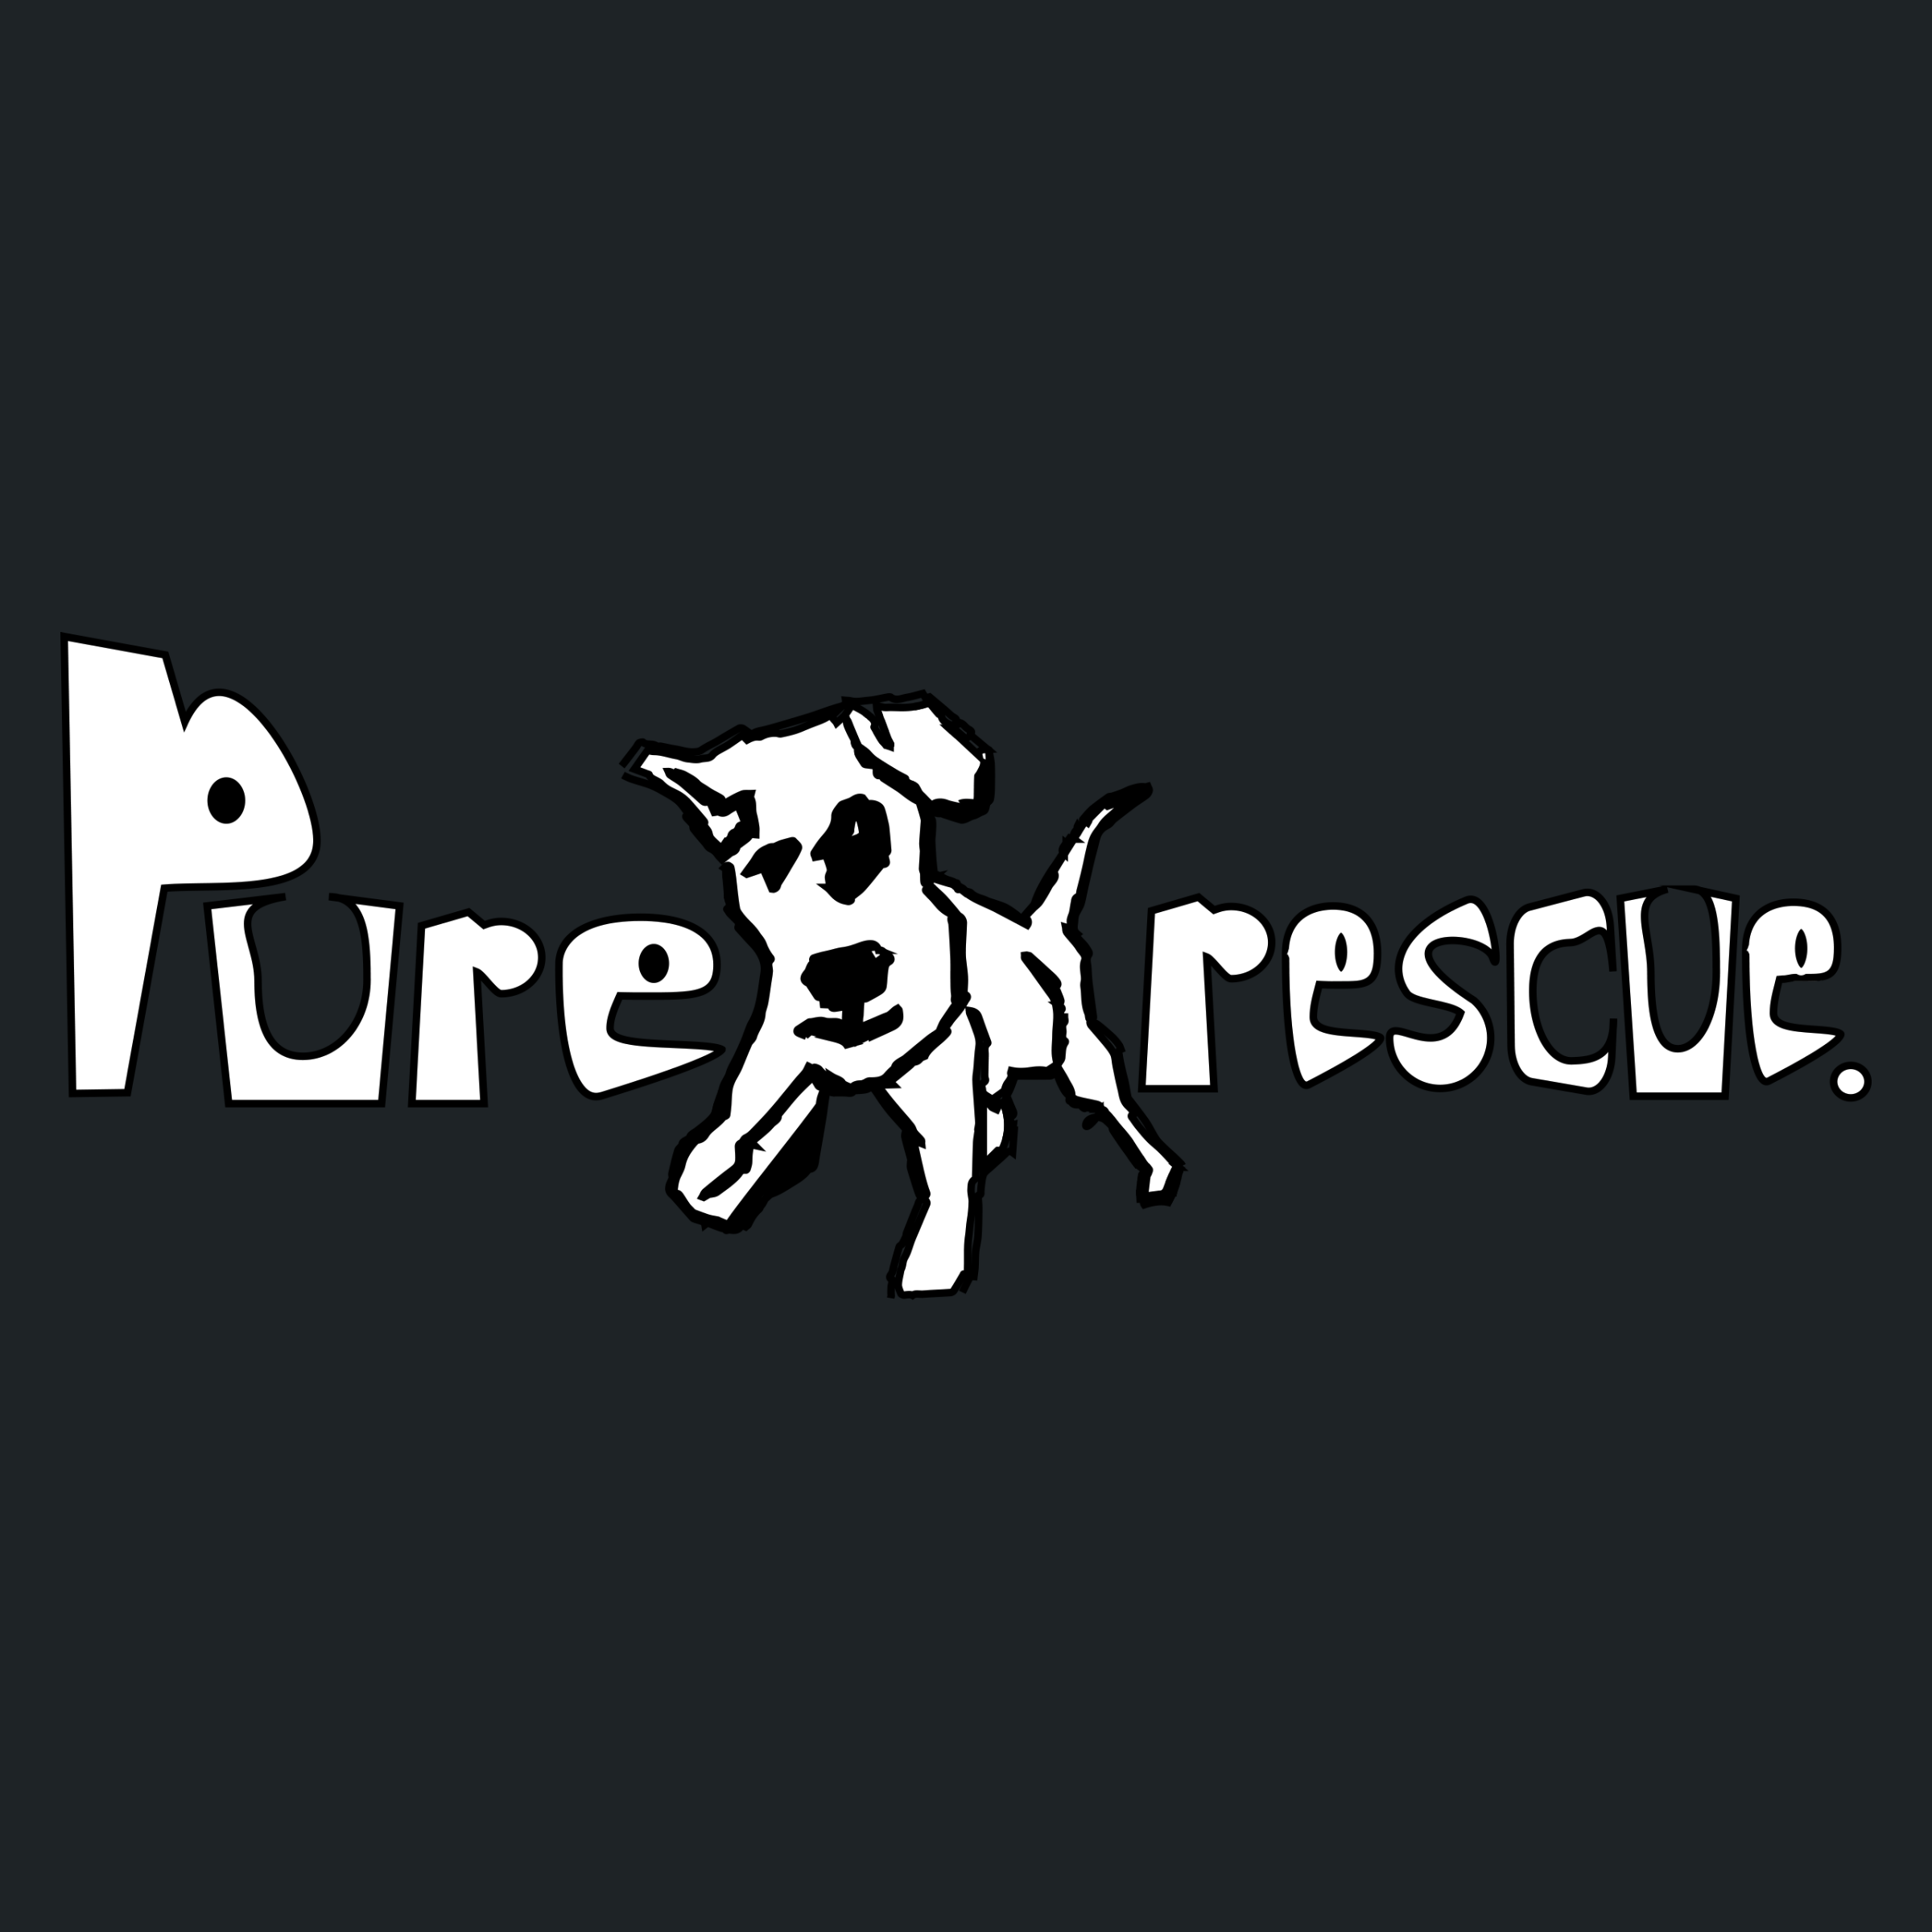 Pure rescue.  Detail